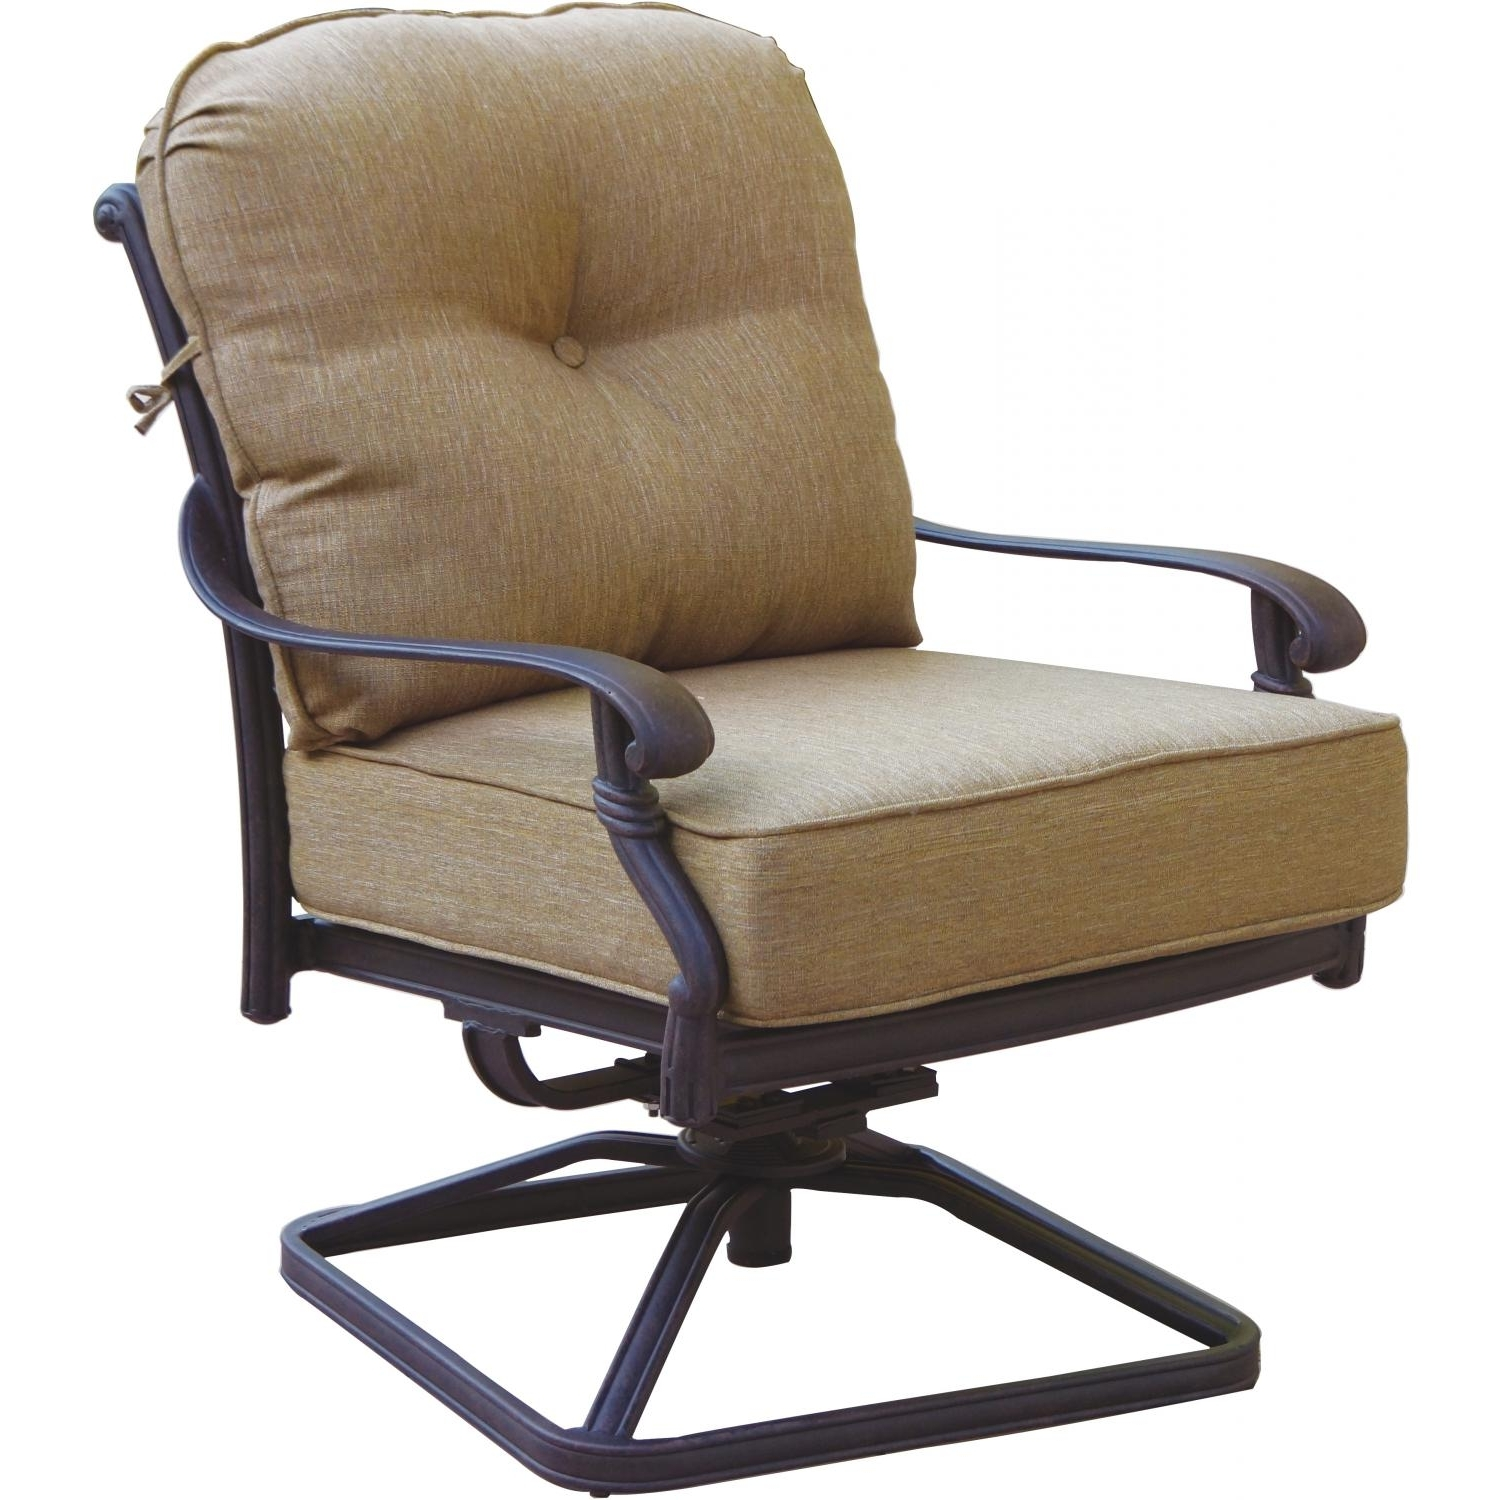 Patio Rocking Chair – Modern Chairs Quality Interior 2018 With Regard To Most Popular Rocking Chairs For Patio (View 6 of 15)